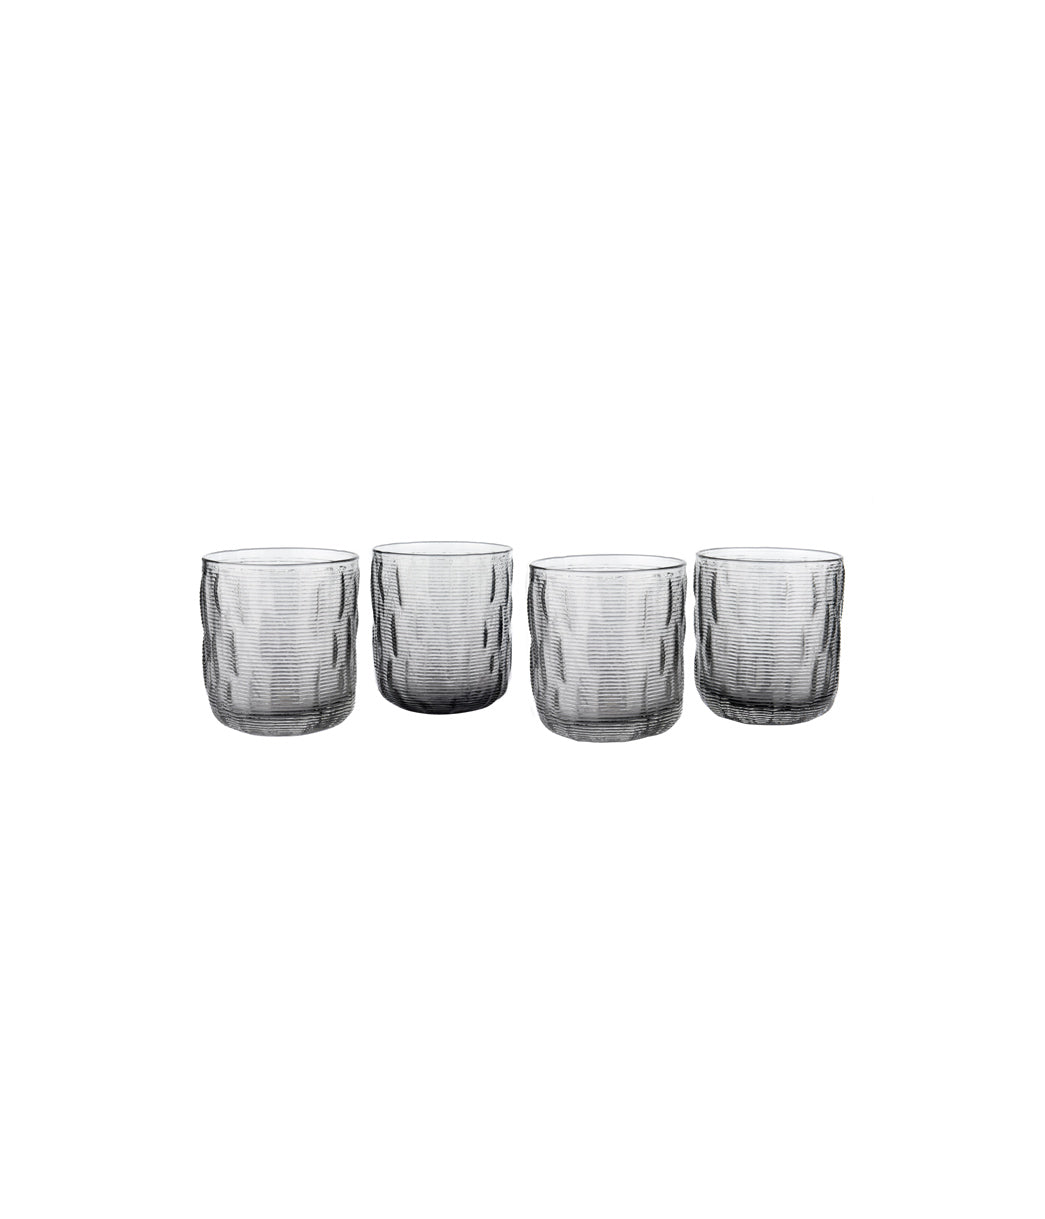 Horizontal lines water glass Set of 4